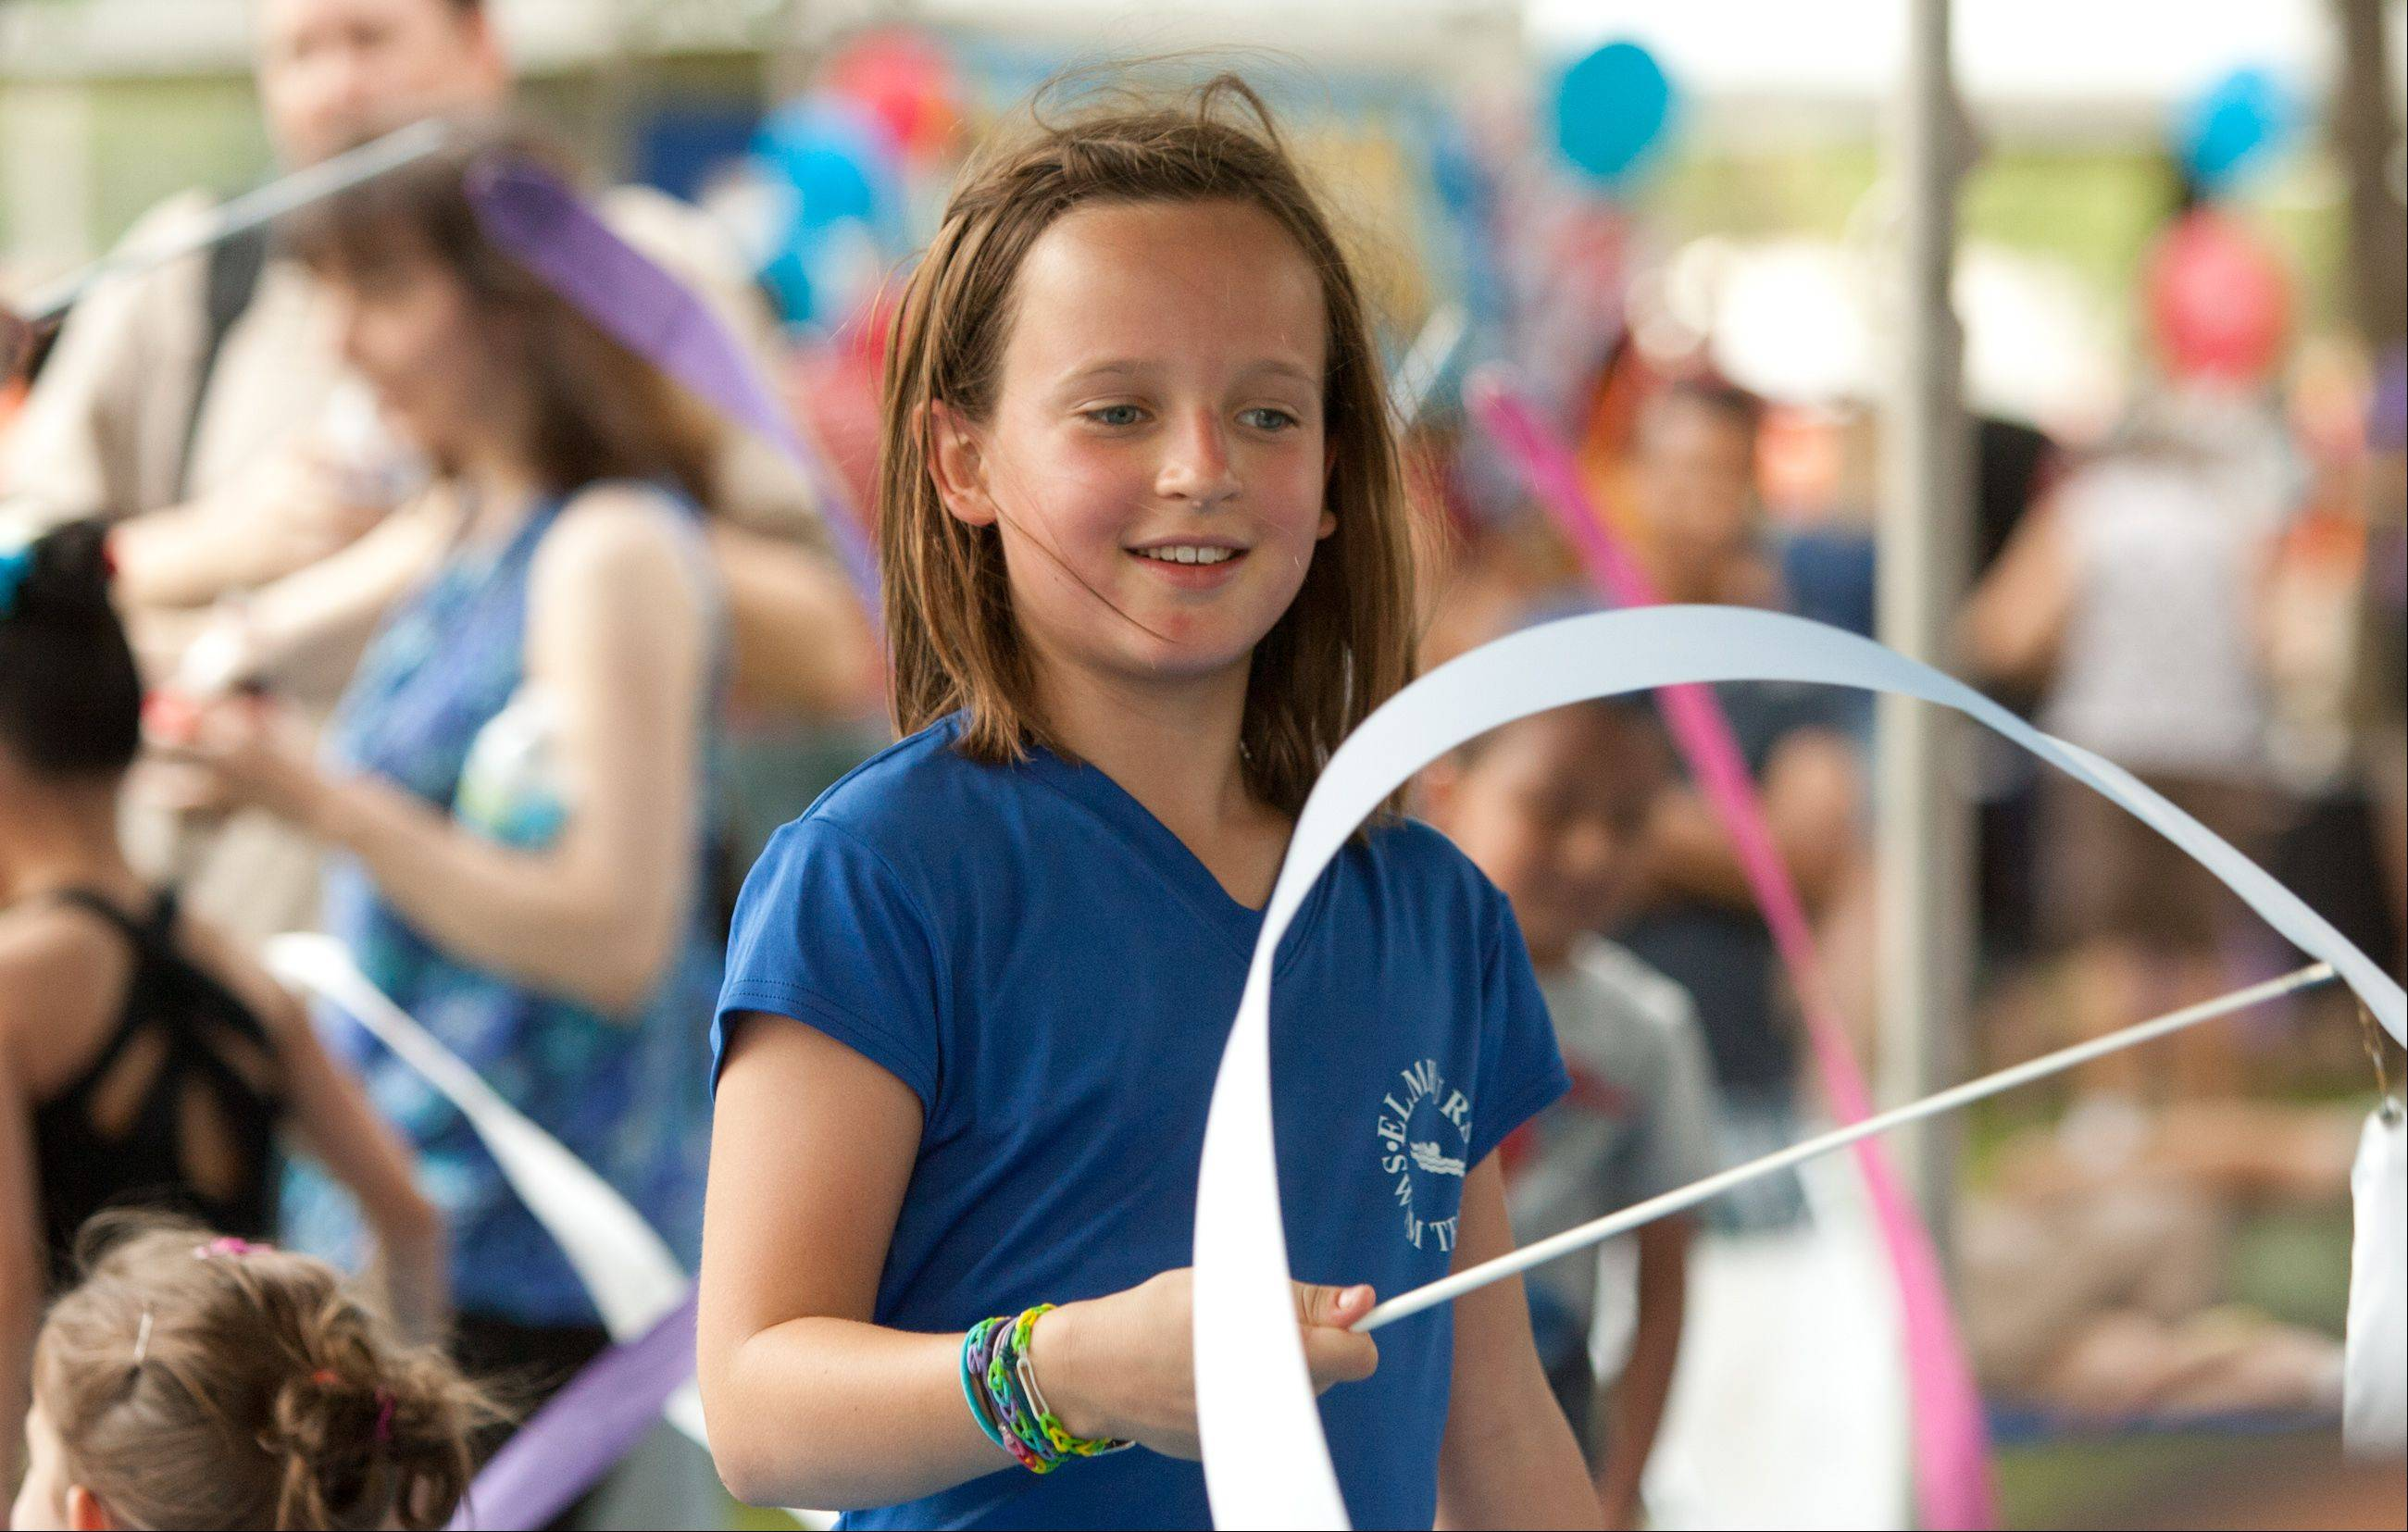 Julia Kevin, 10, of Elmhurst practices rhythmic exercises in the Elite Sports Complex of Downers Grove's booth, at the Eyes to the Skies Festival at Community Park in Lisle.